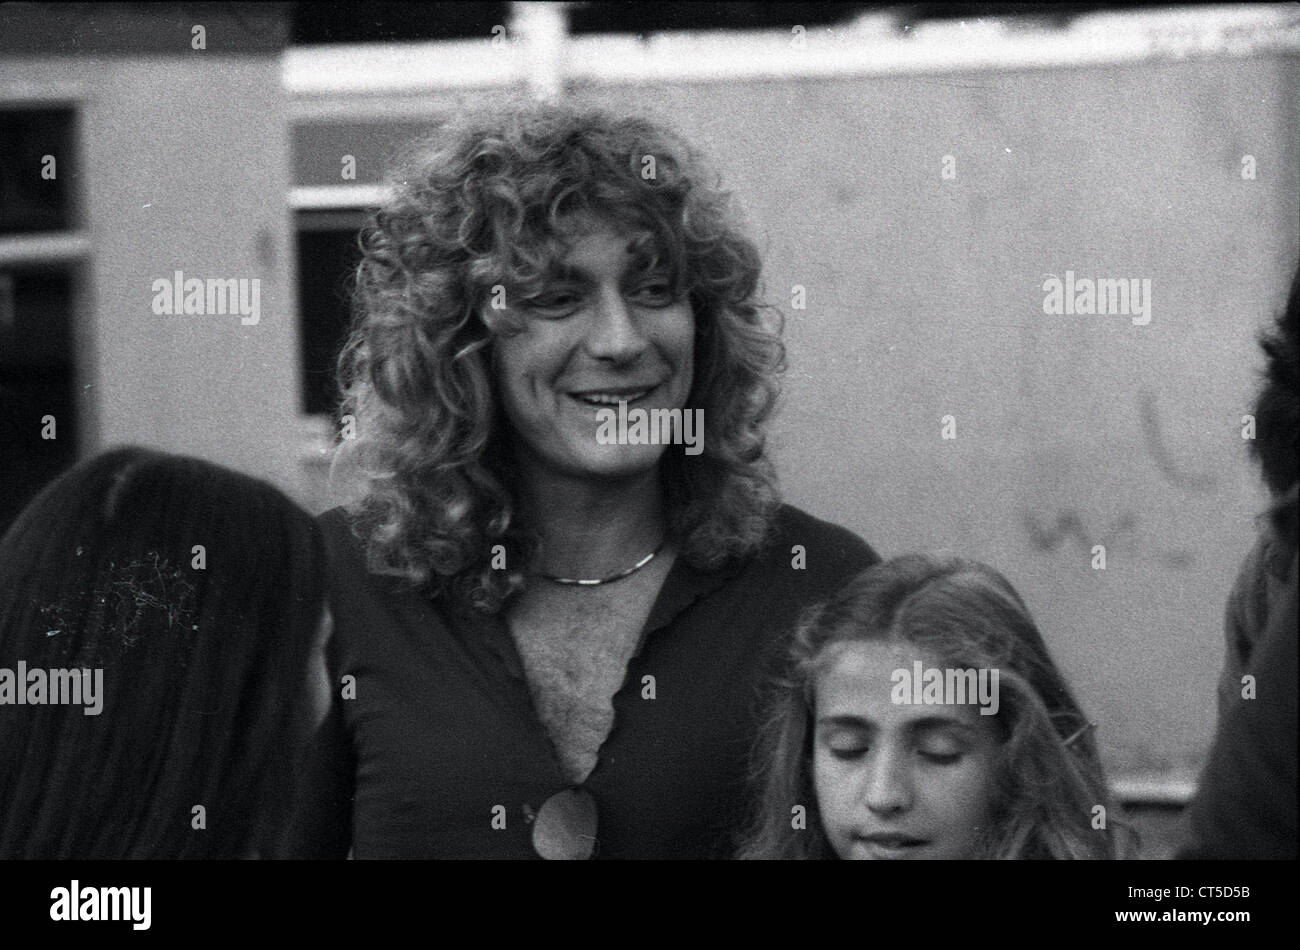 009481 - Robert Plant with his daughter Carmen backstage at the Knebworth Festival in August 1979 - Stock Image